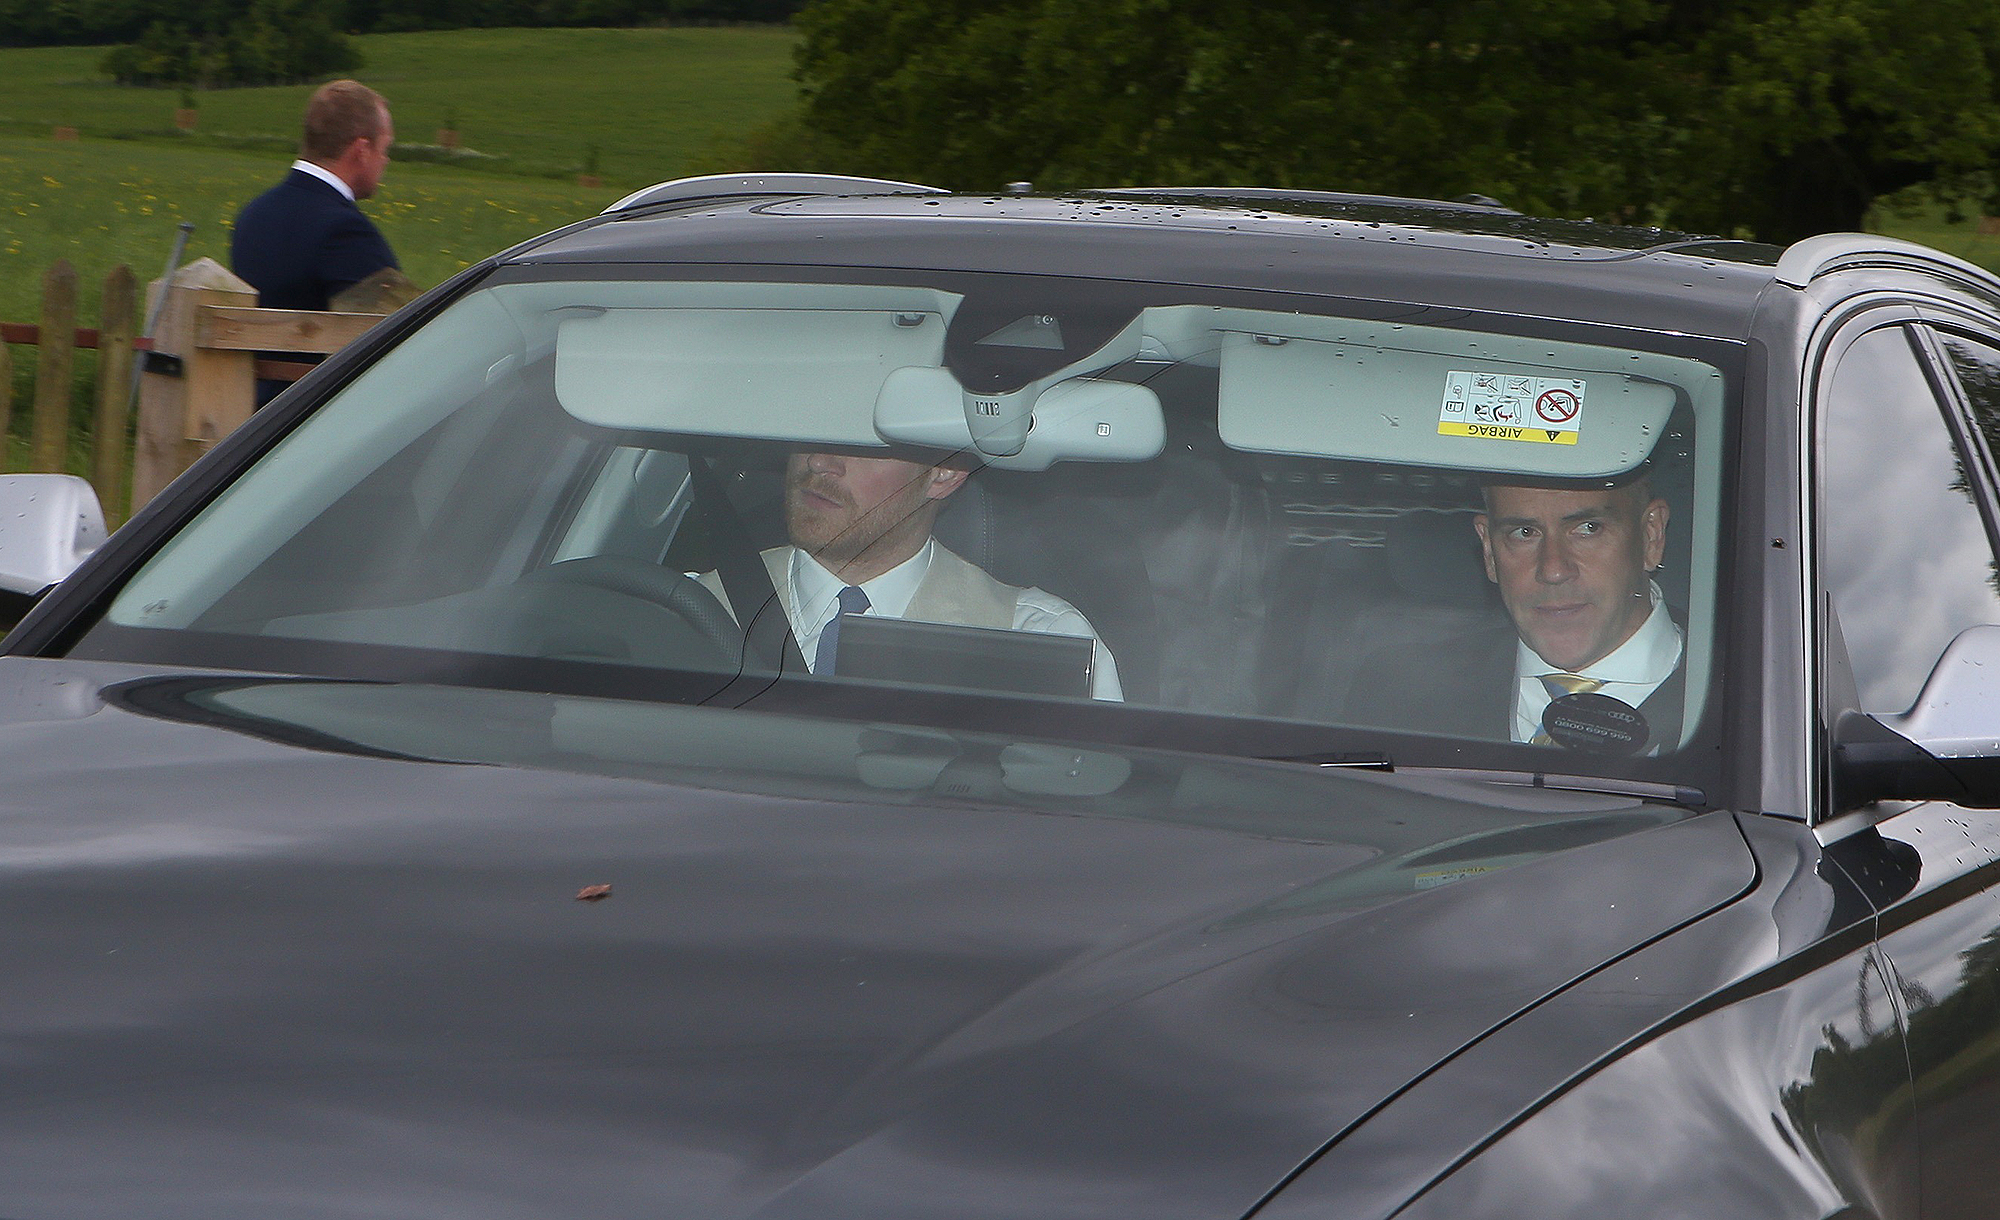 HRH Prince Harry seen leaving the Pippa Middleton and James Matthews wedding early to collect girlfriend Meghan from Kensington Palace